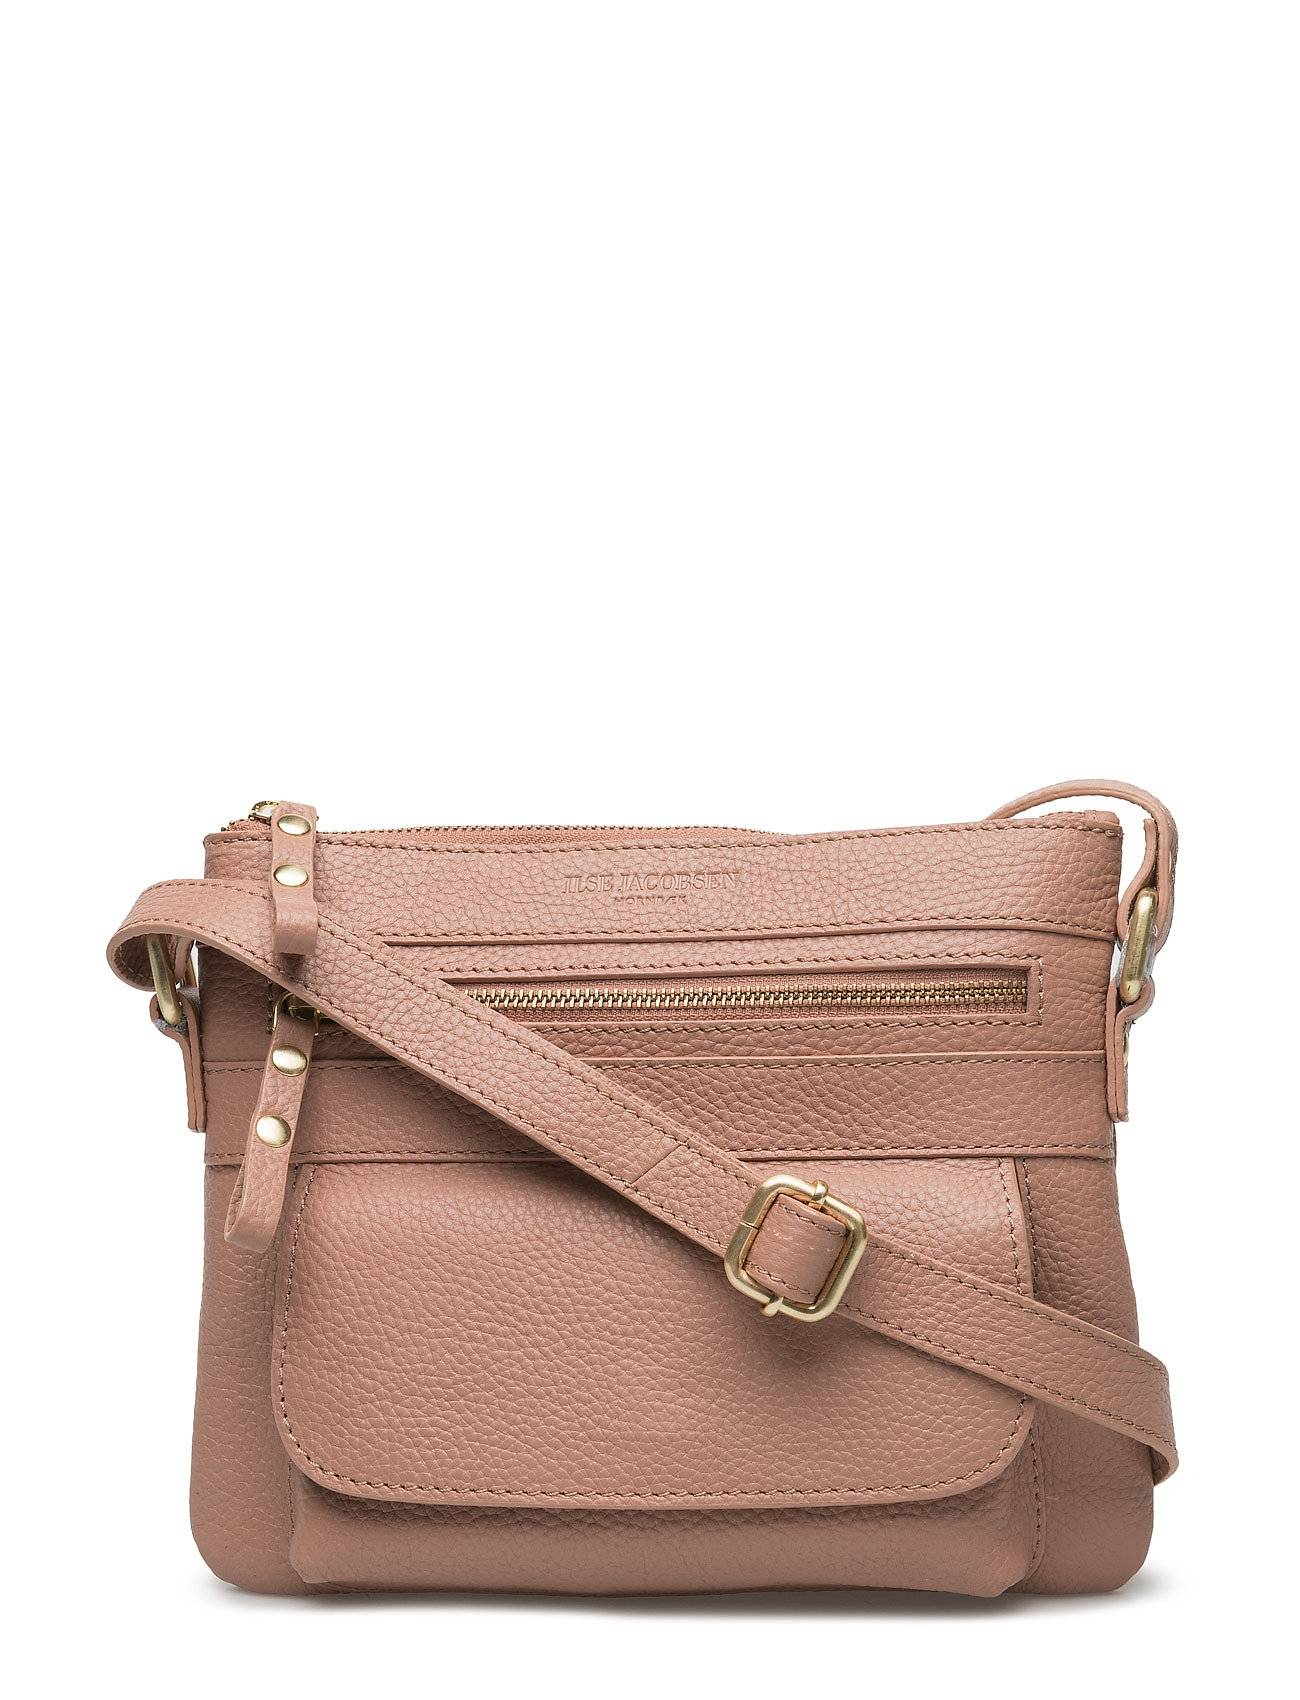 Ilse Jacobsen Leather Bag